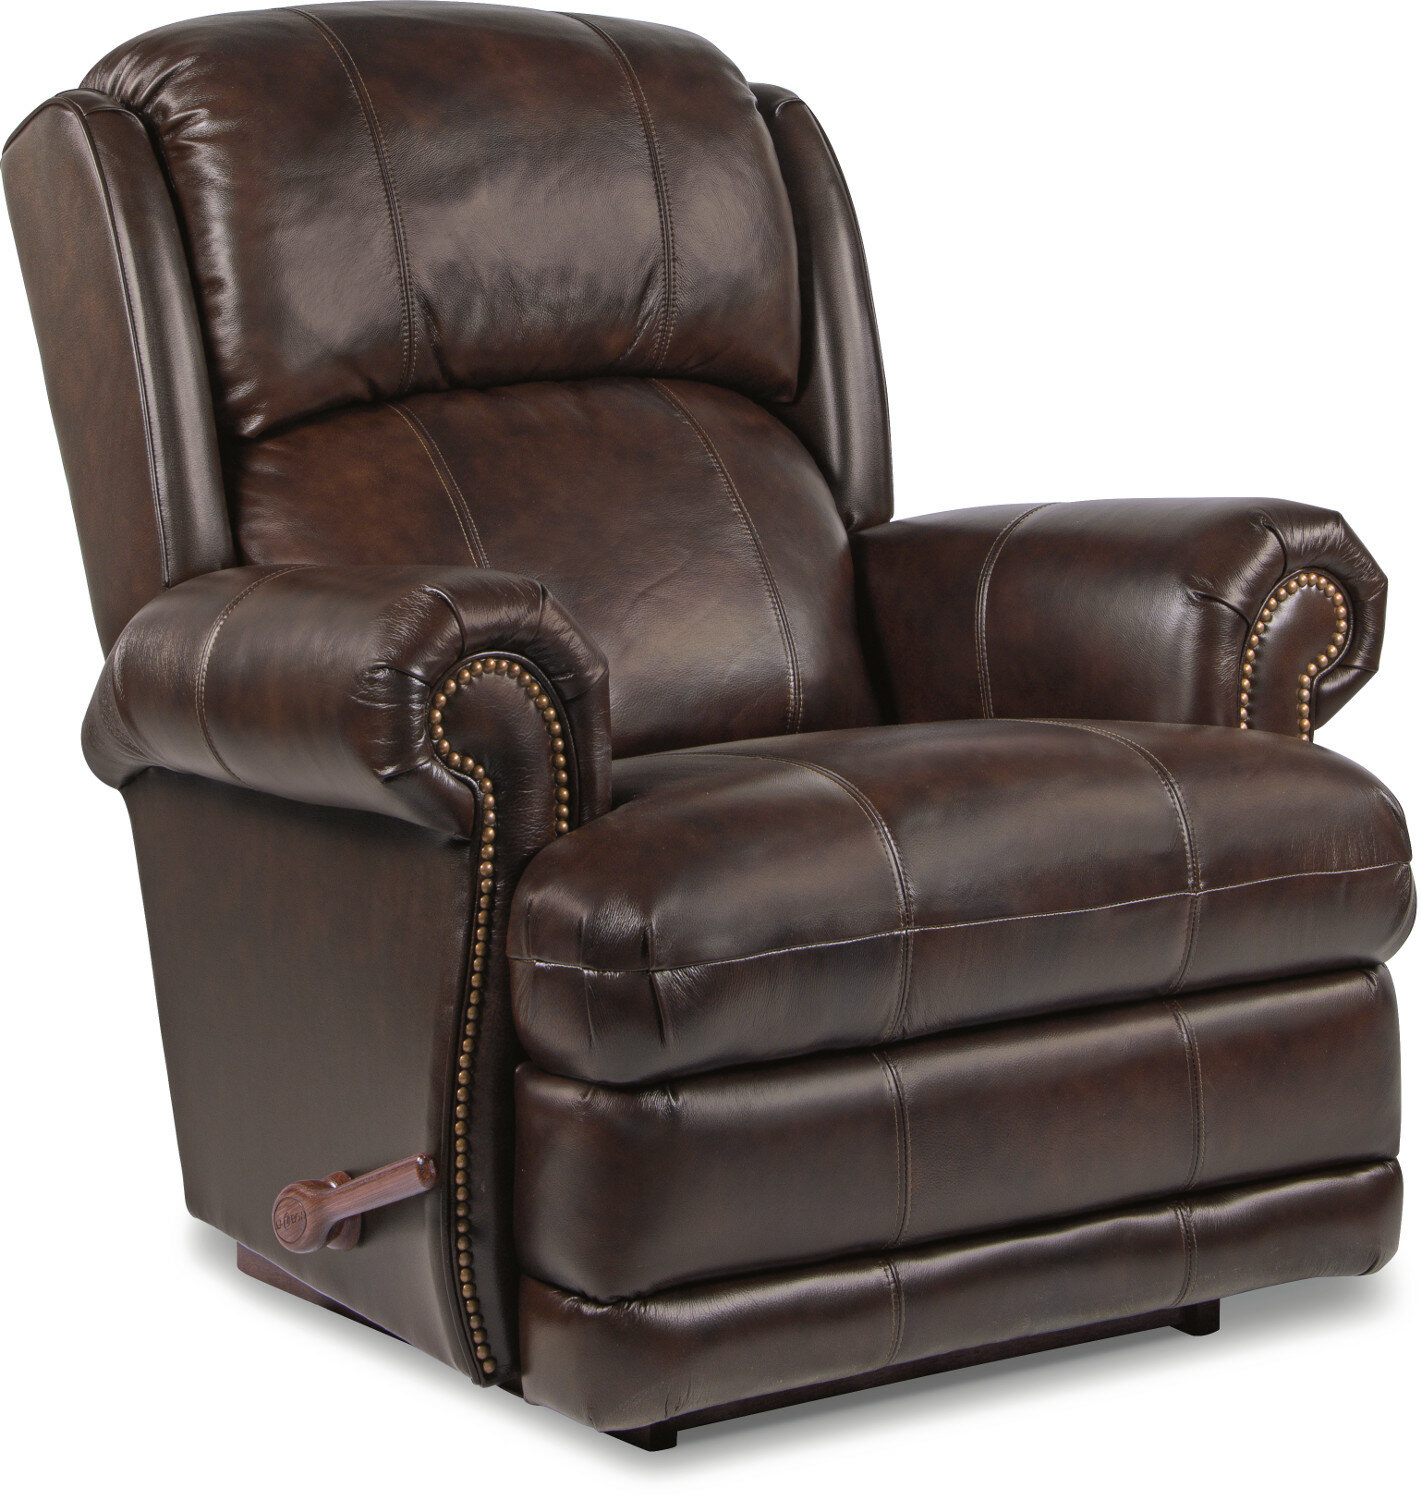 Superieur Kirkwood Leather Recliner